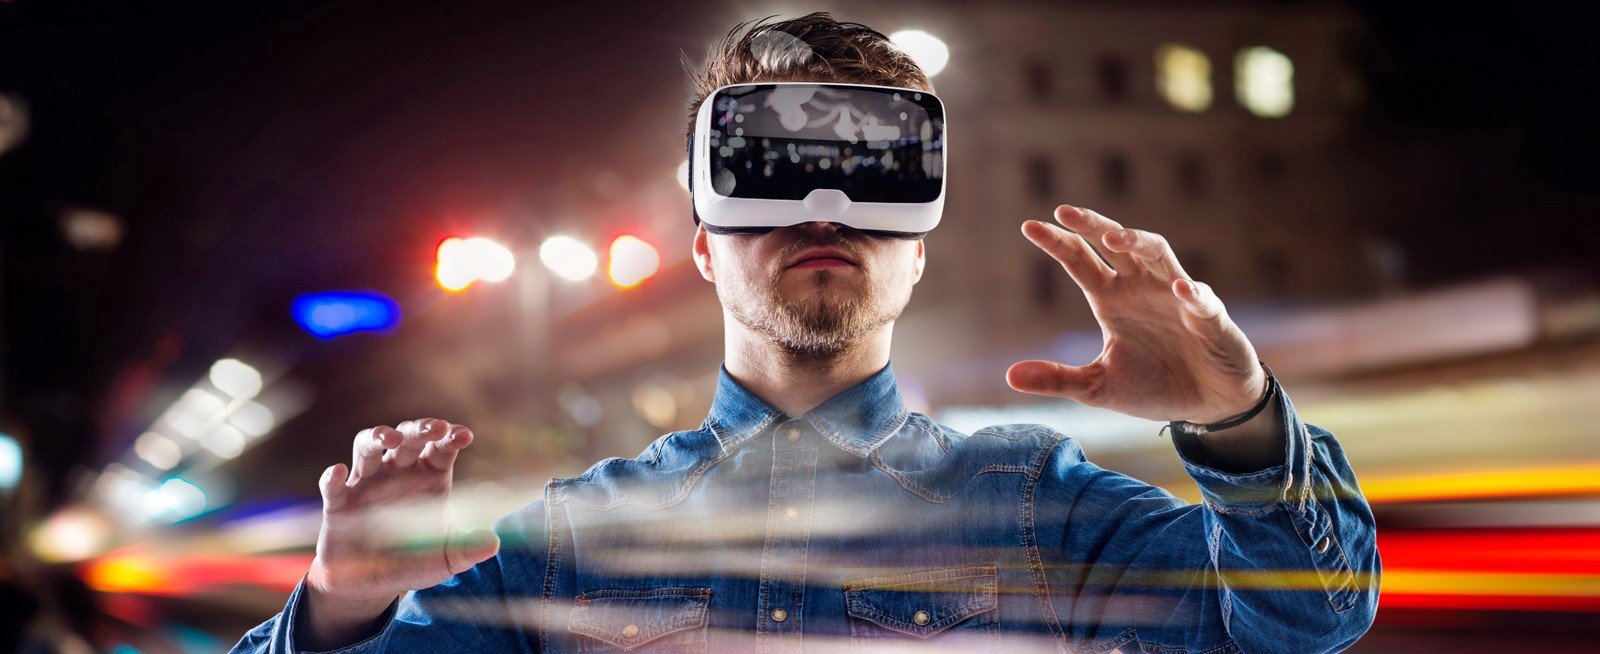 Going beyond Gaming: VR/AR as a disruptive technology for enterprises